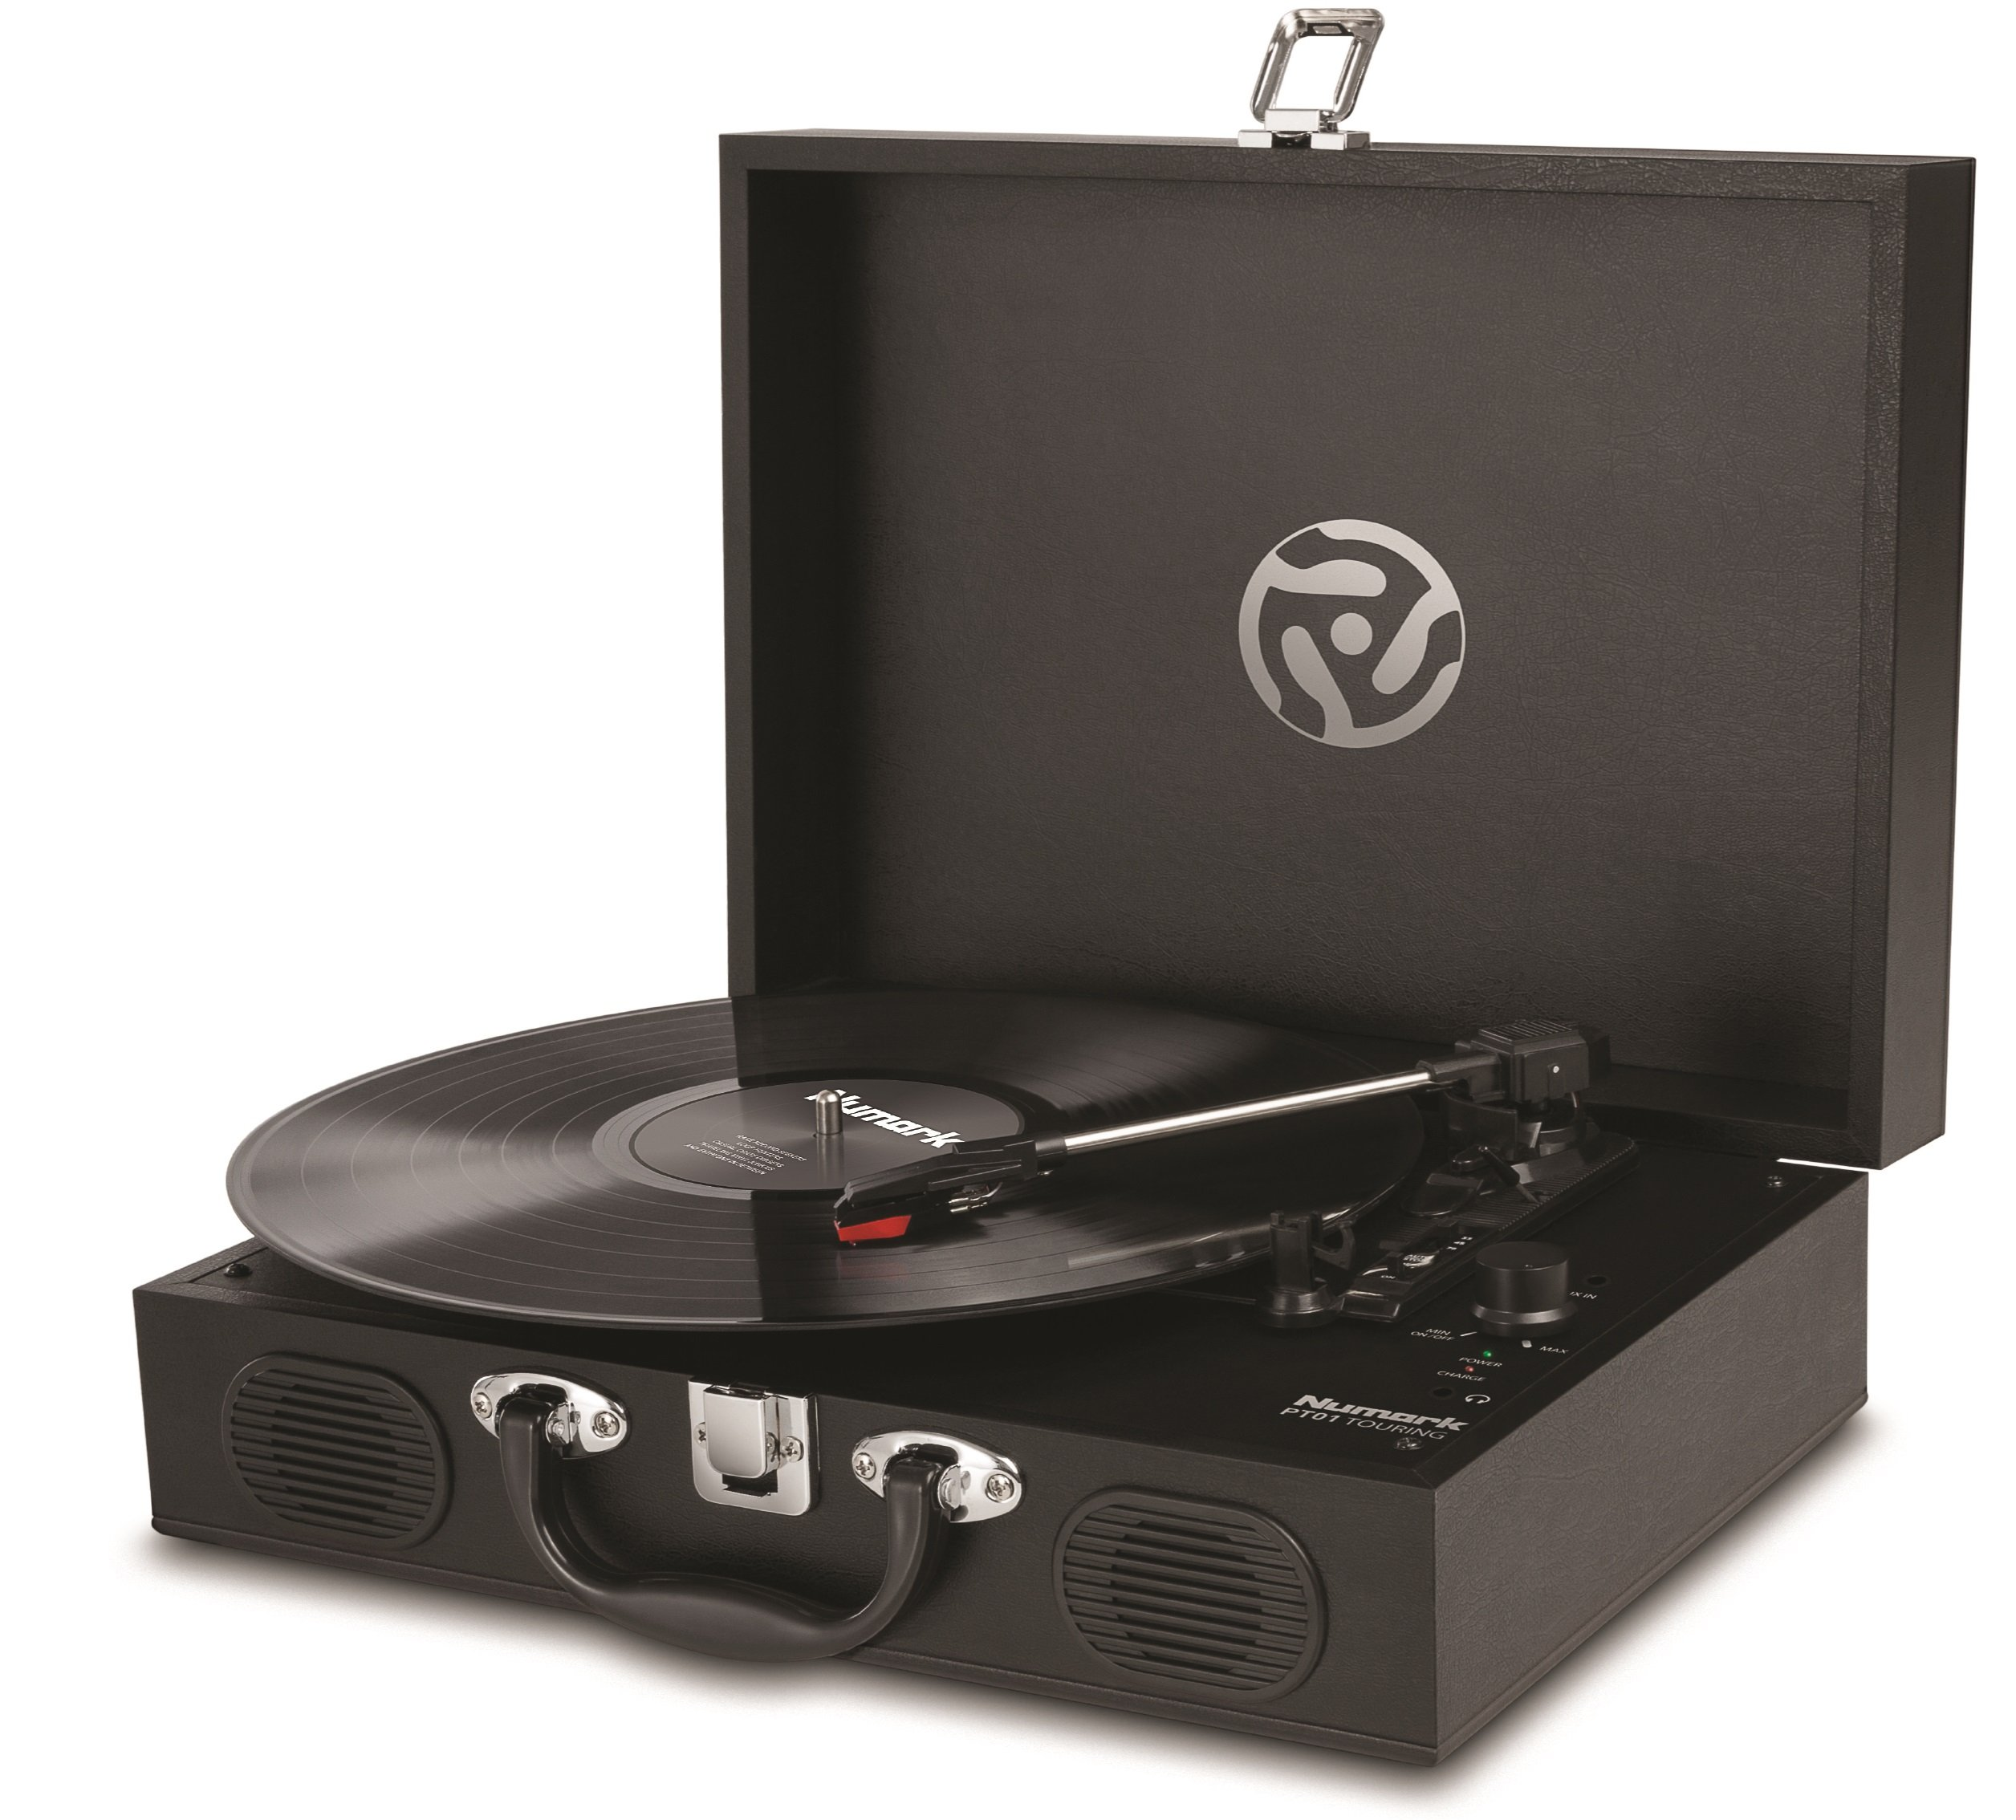 Numark PT01 Touring   Classically-styled Suitcase Turntable with USB Port, and Built-In Speakers & Rechargeable Battery